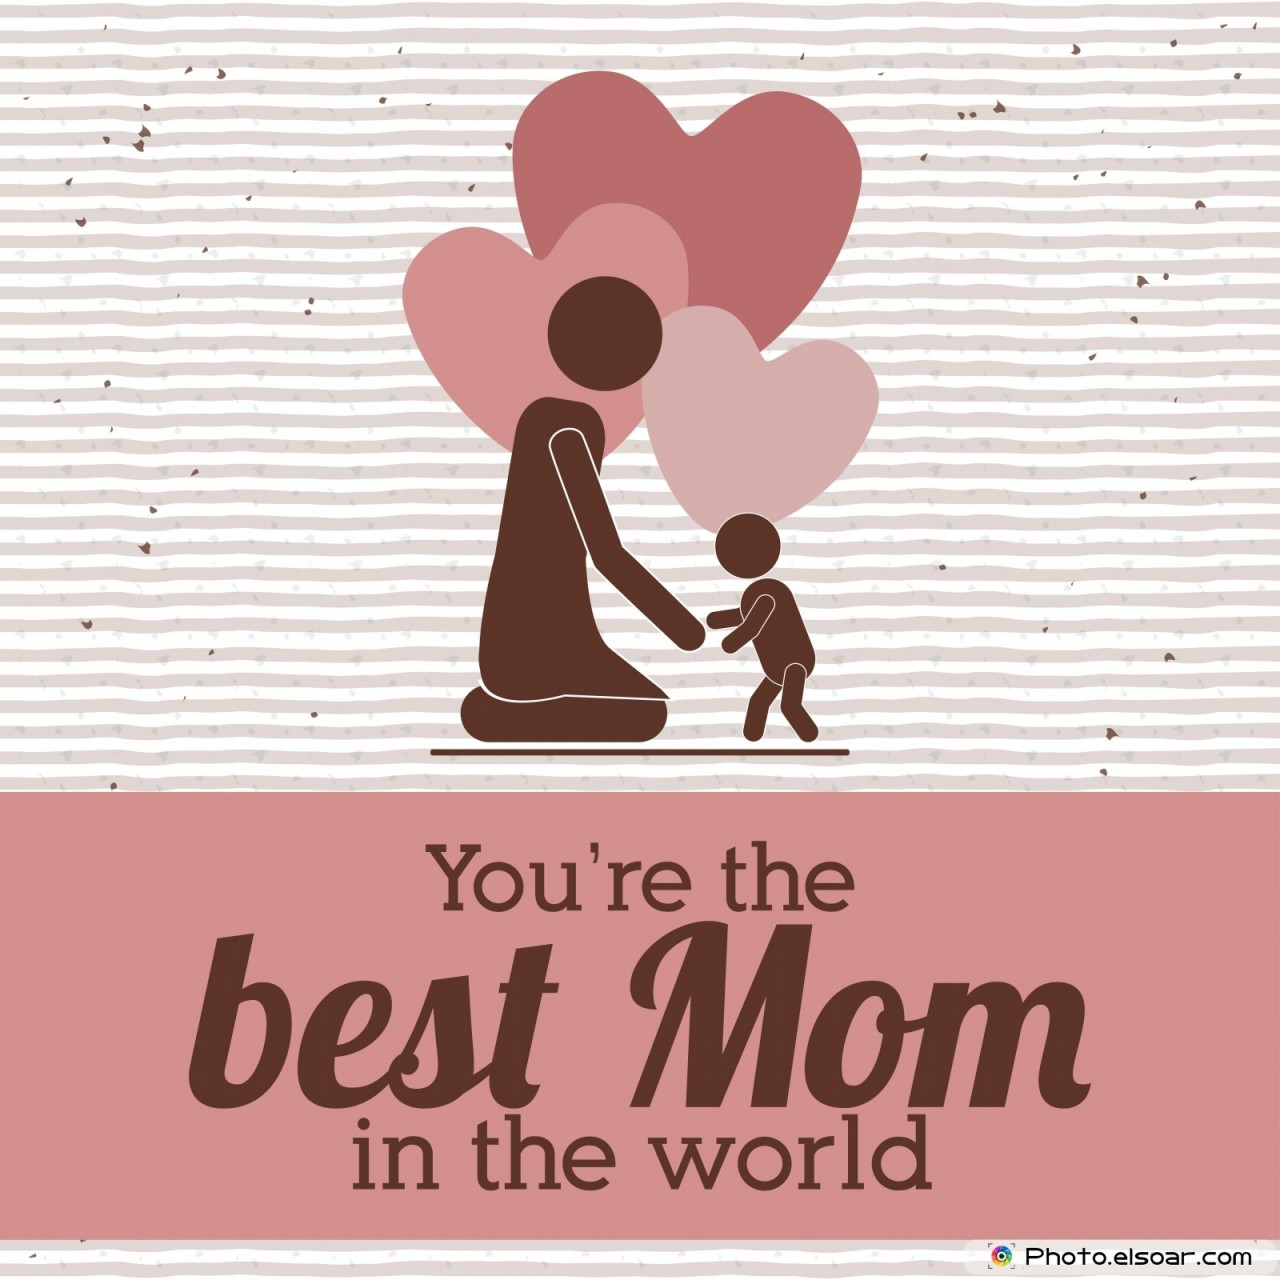 You're the best Mom in the world